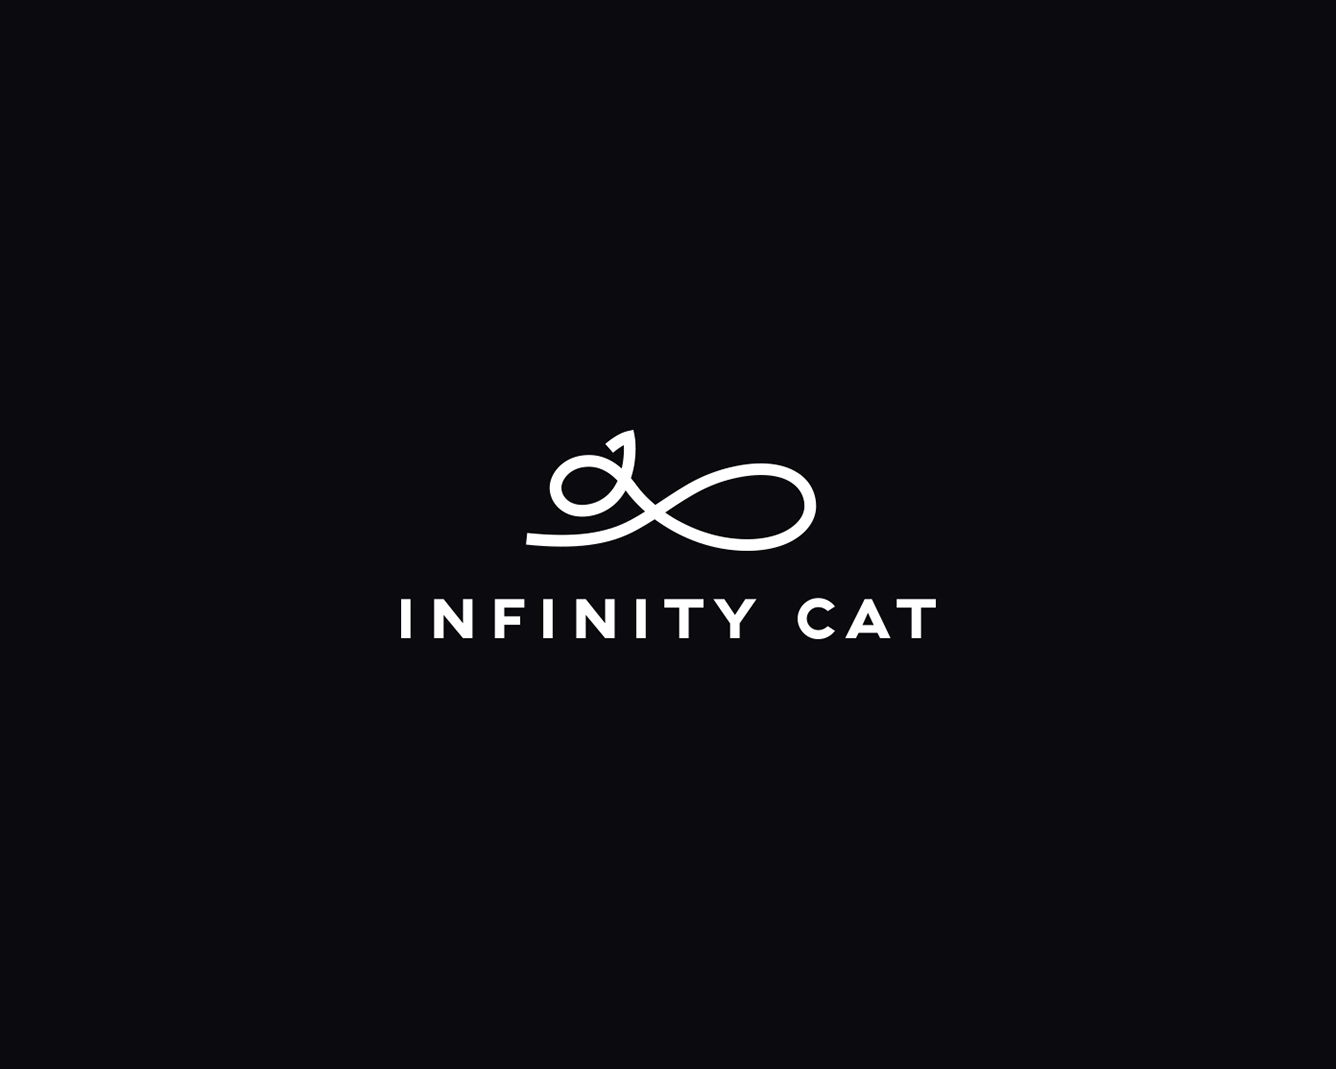 Designer creates logos with hidden meanings - 3